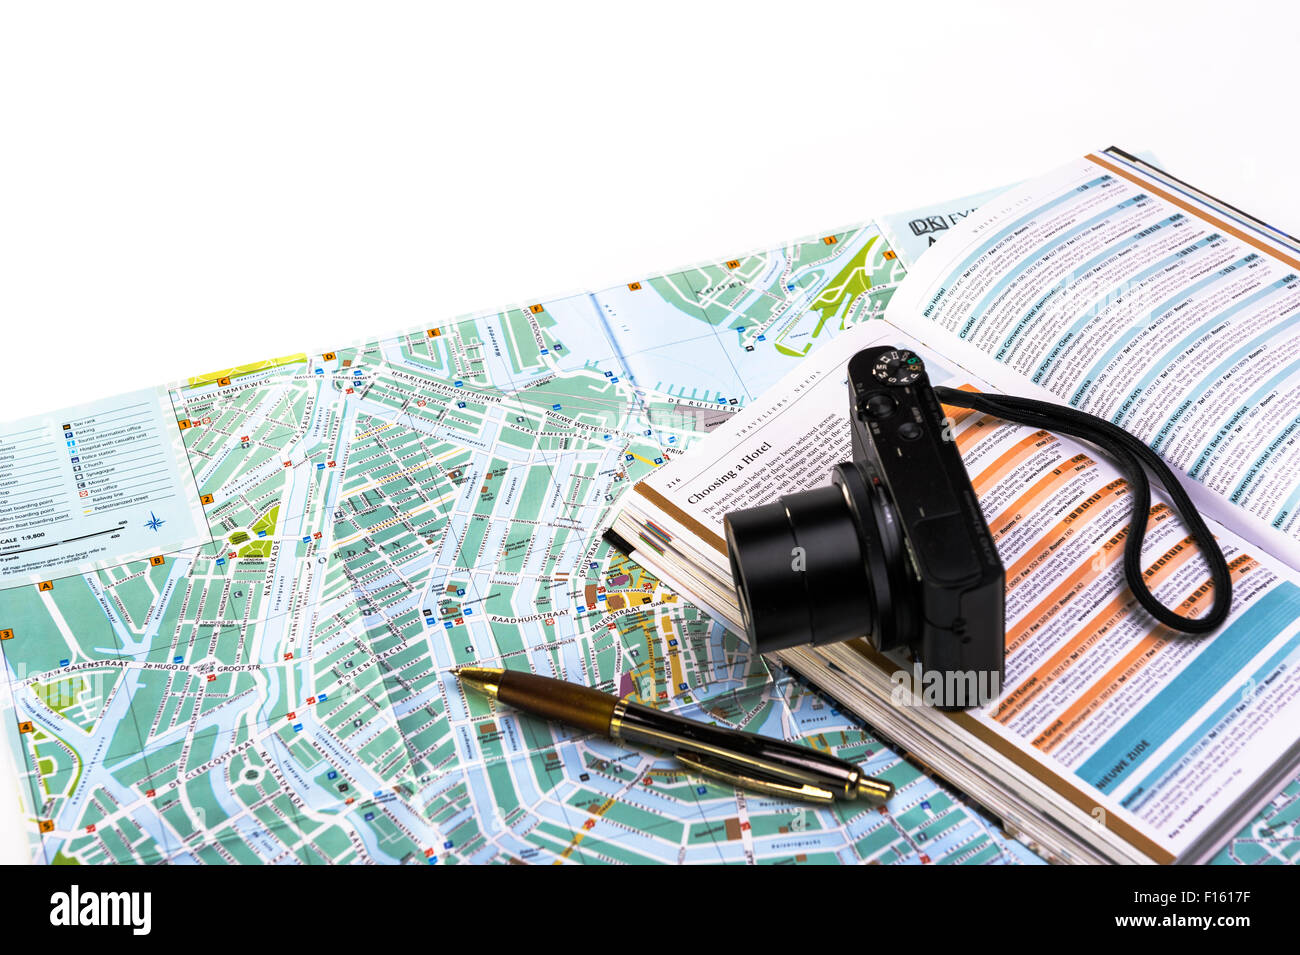 Planning a touring holiday around Europe.Vacation planning. - Stock Image